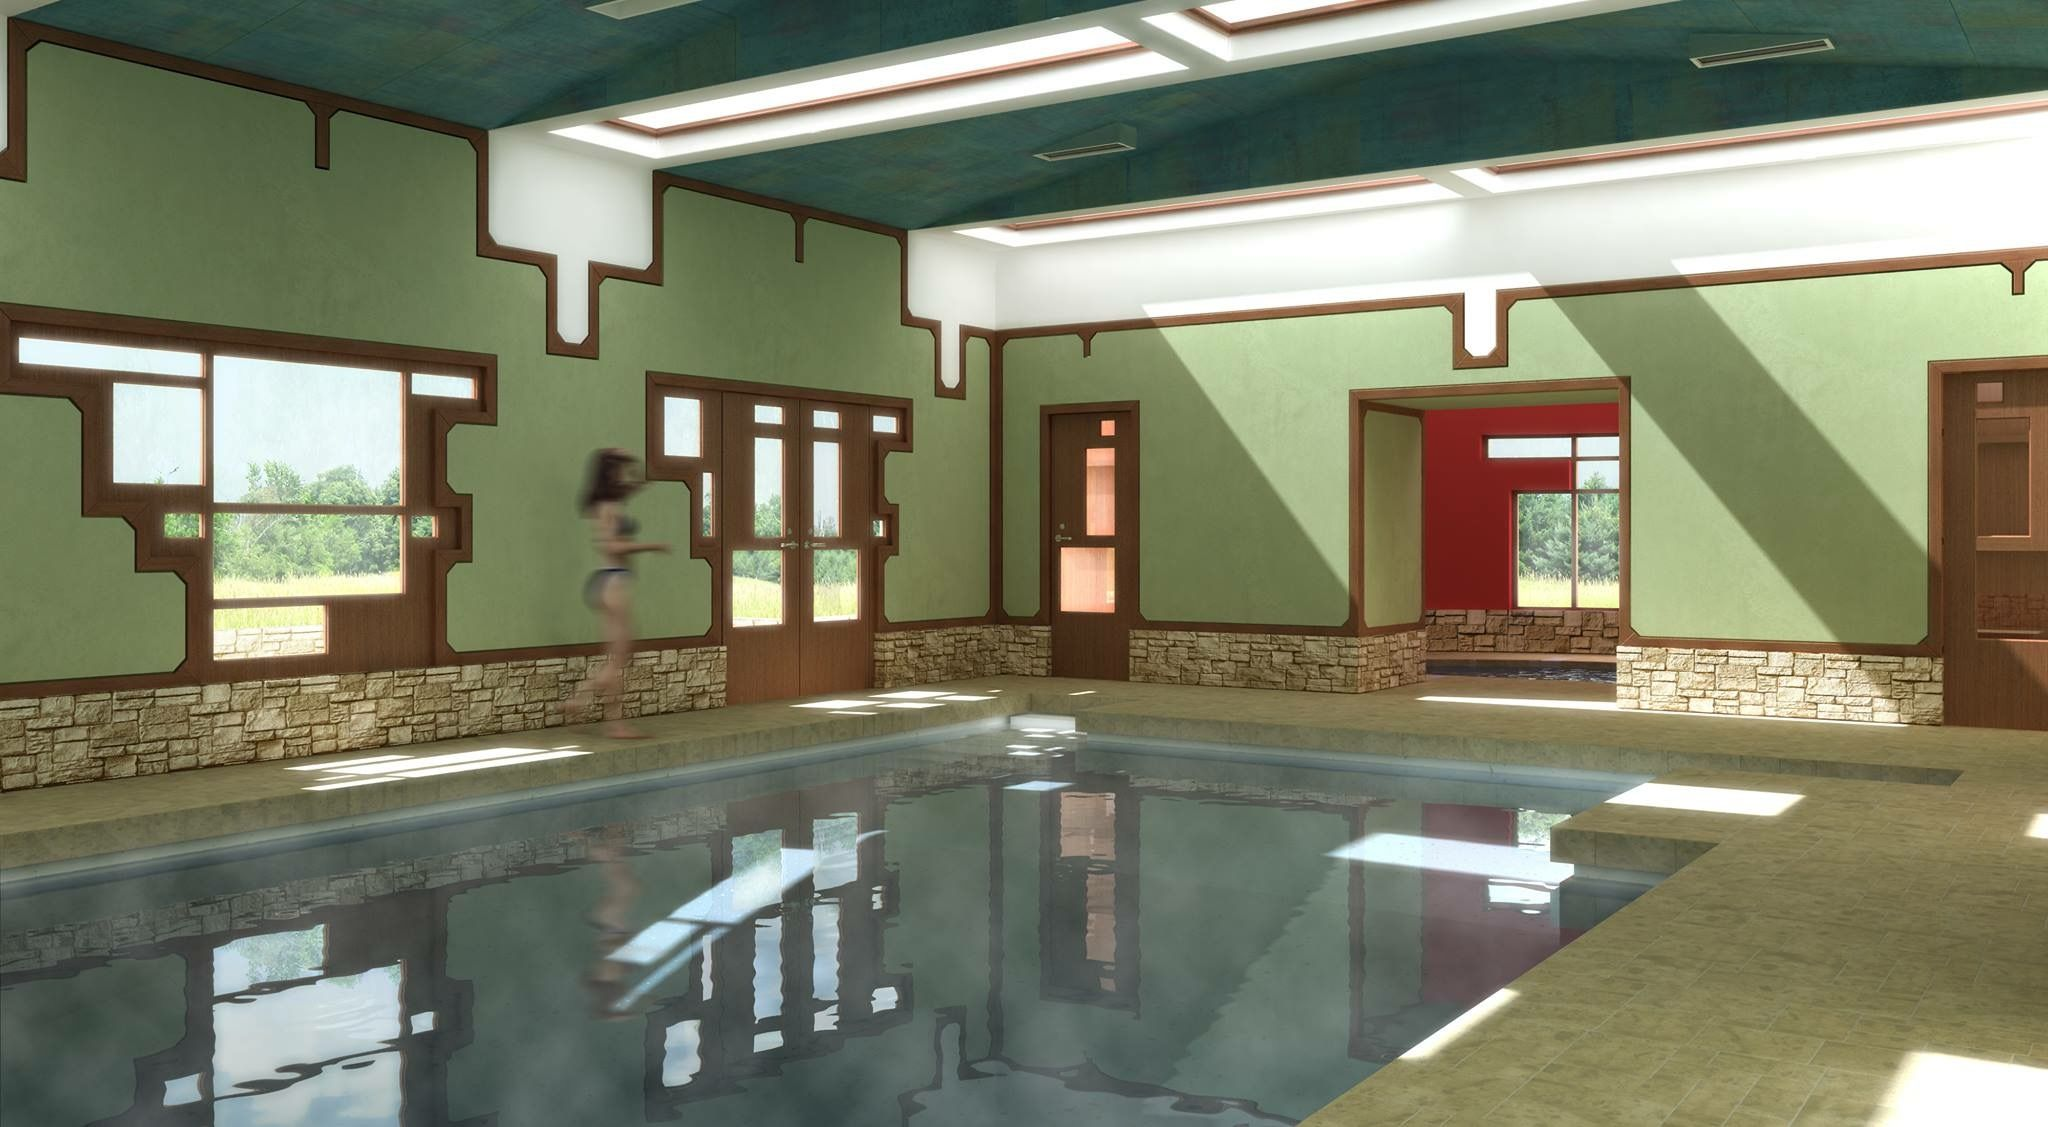 Design For An Interior Courtyard Pool By George Ranalli, Architect